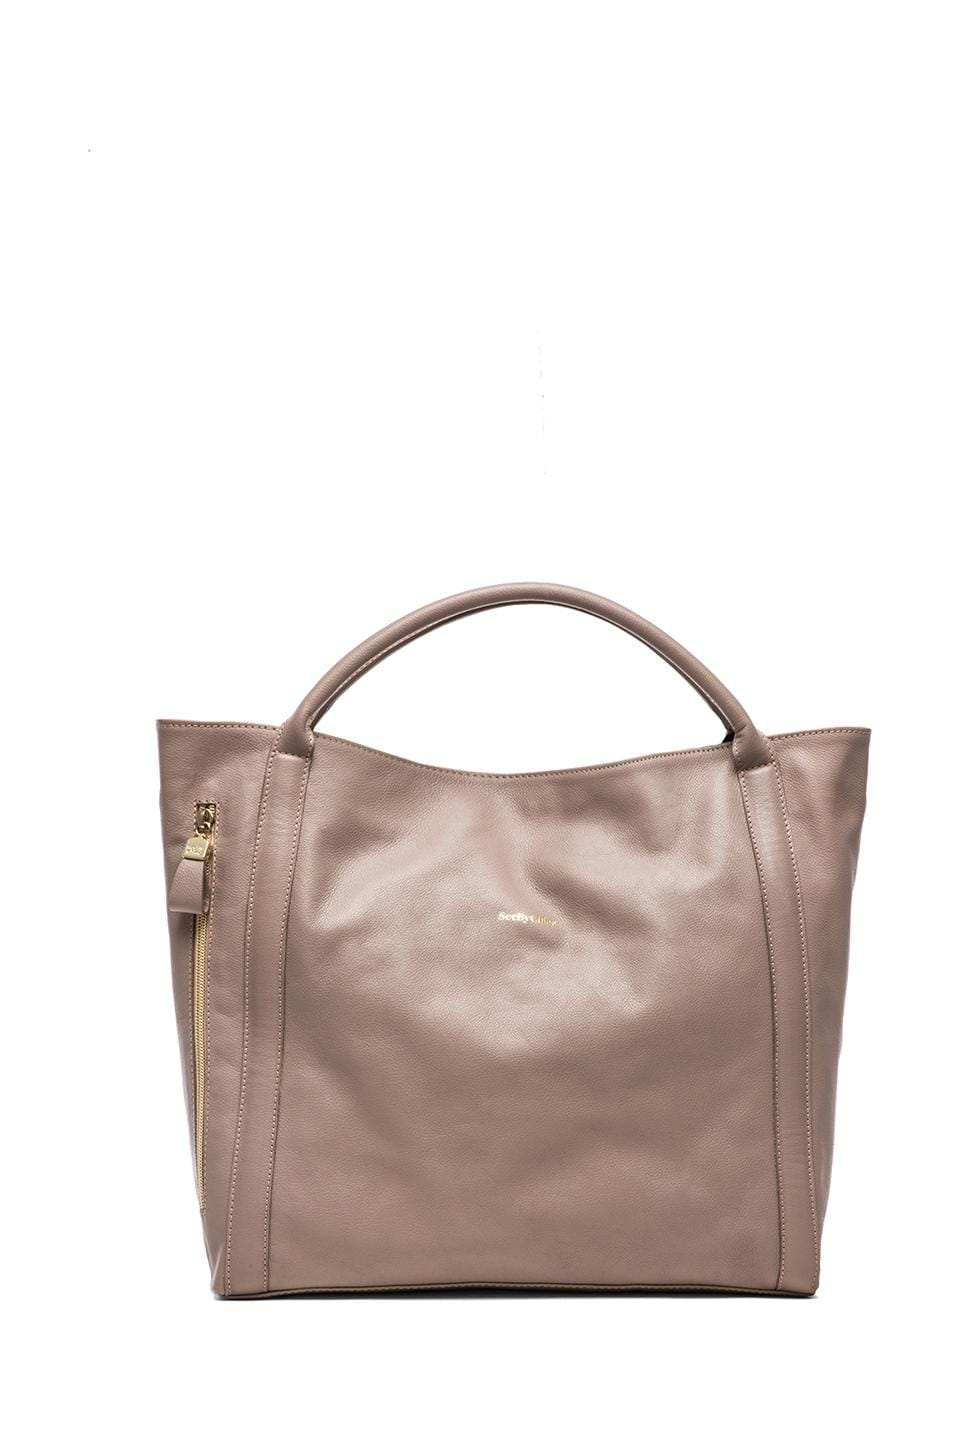 See By Chloe Harriet Hobo in Light Taupe